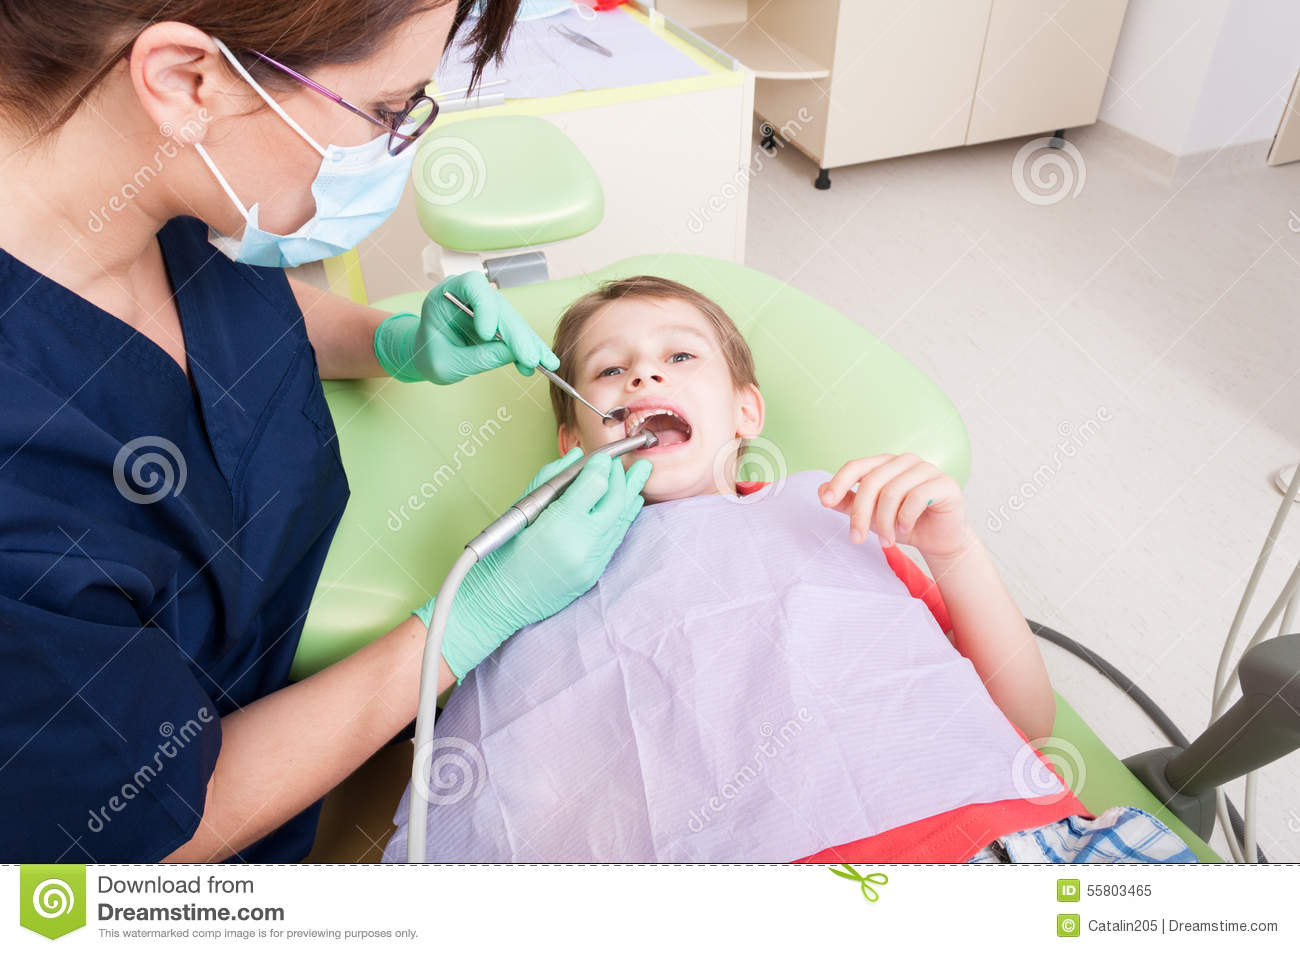 Scared Child On Drilling Procedure In Dentist Chair Stock